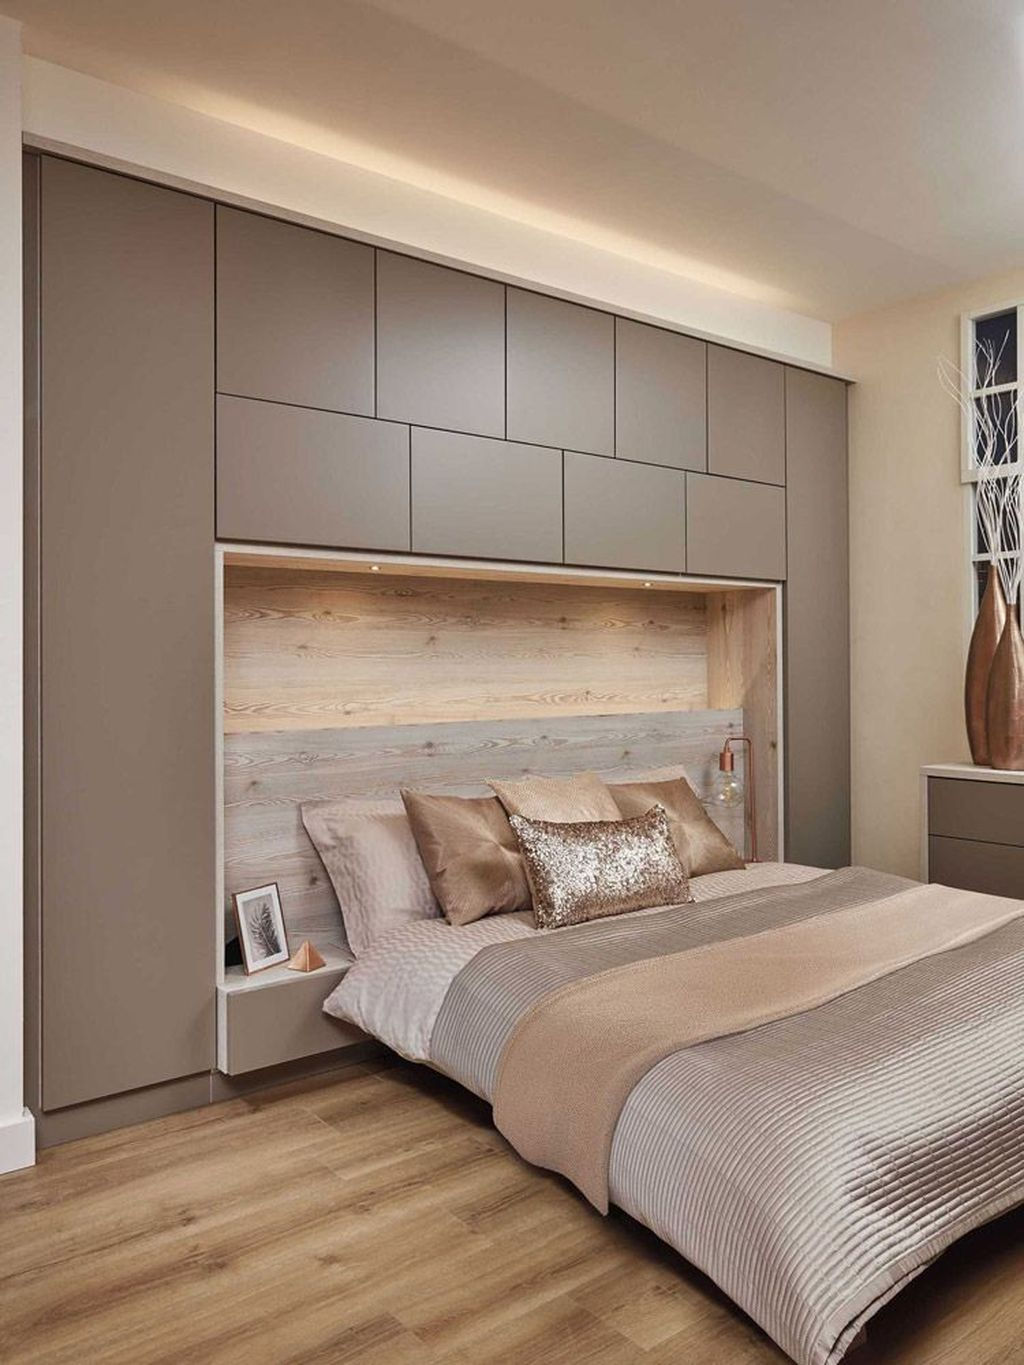 Stunning Bedroom Storage Ideas 01